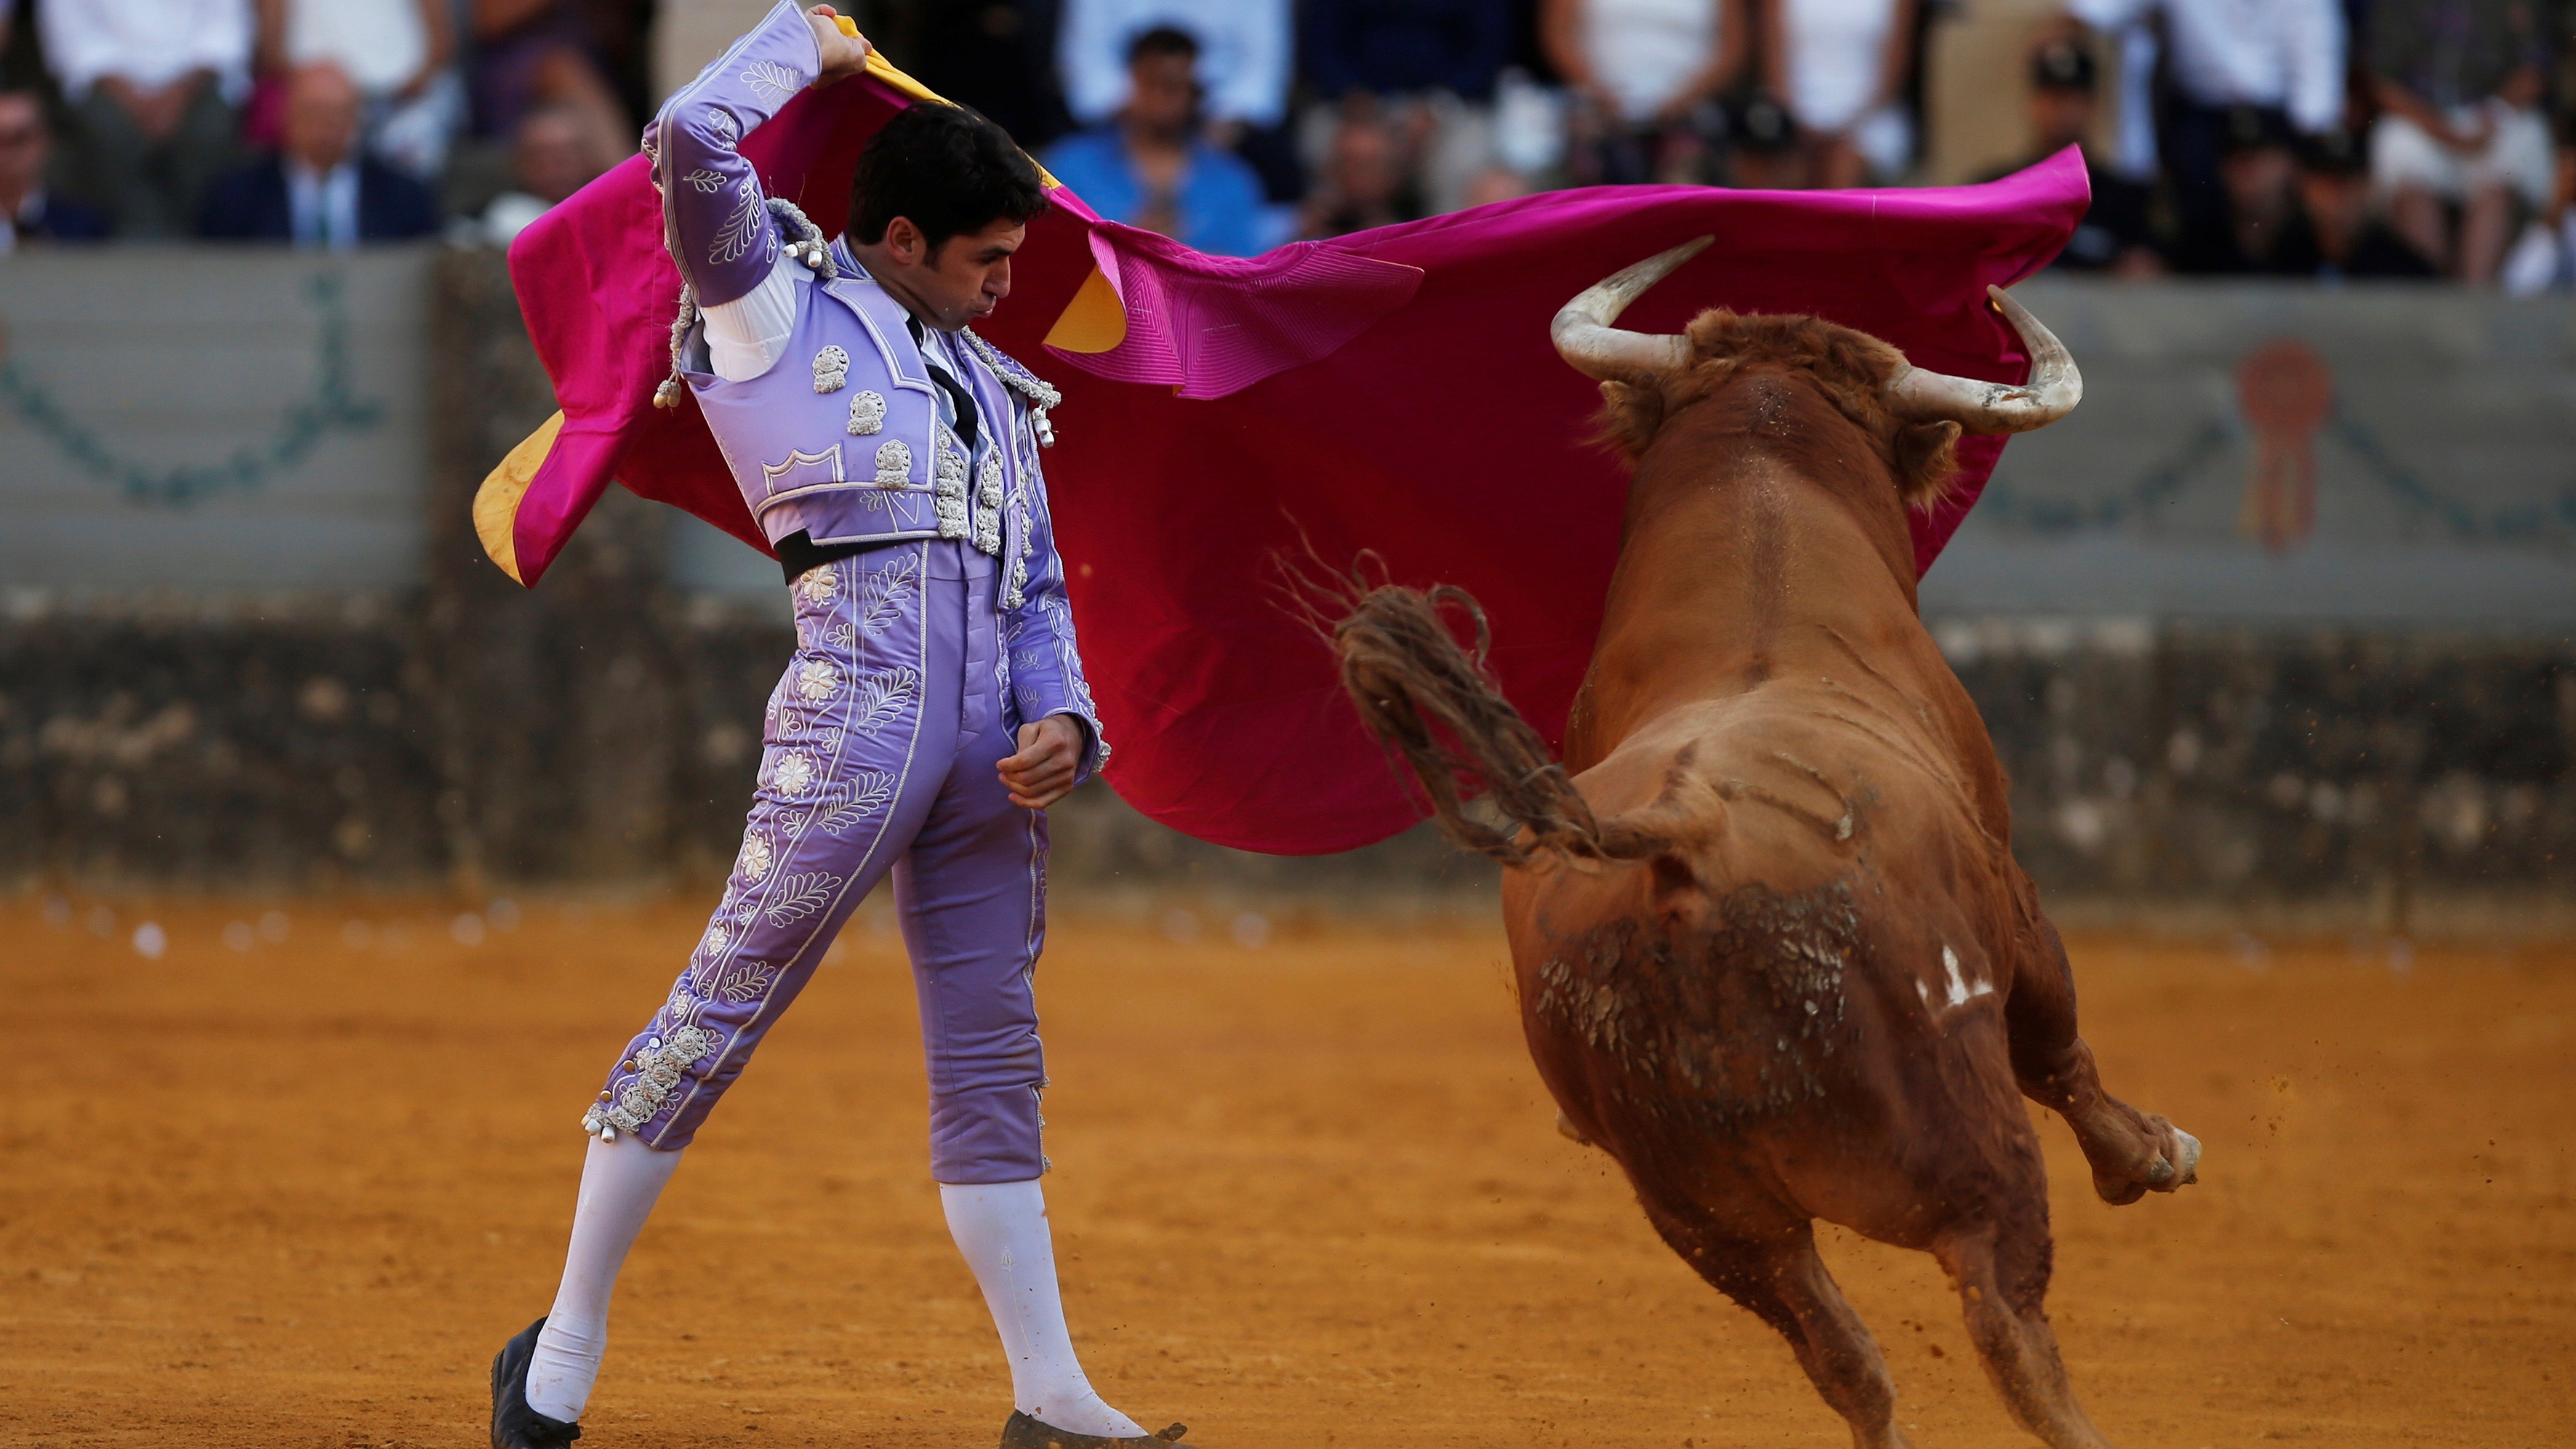 Bullfighting in Spain.